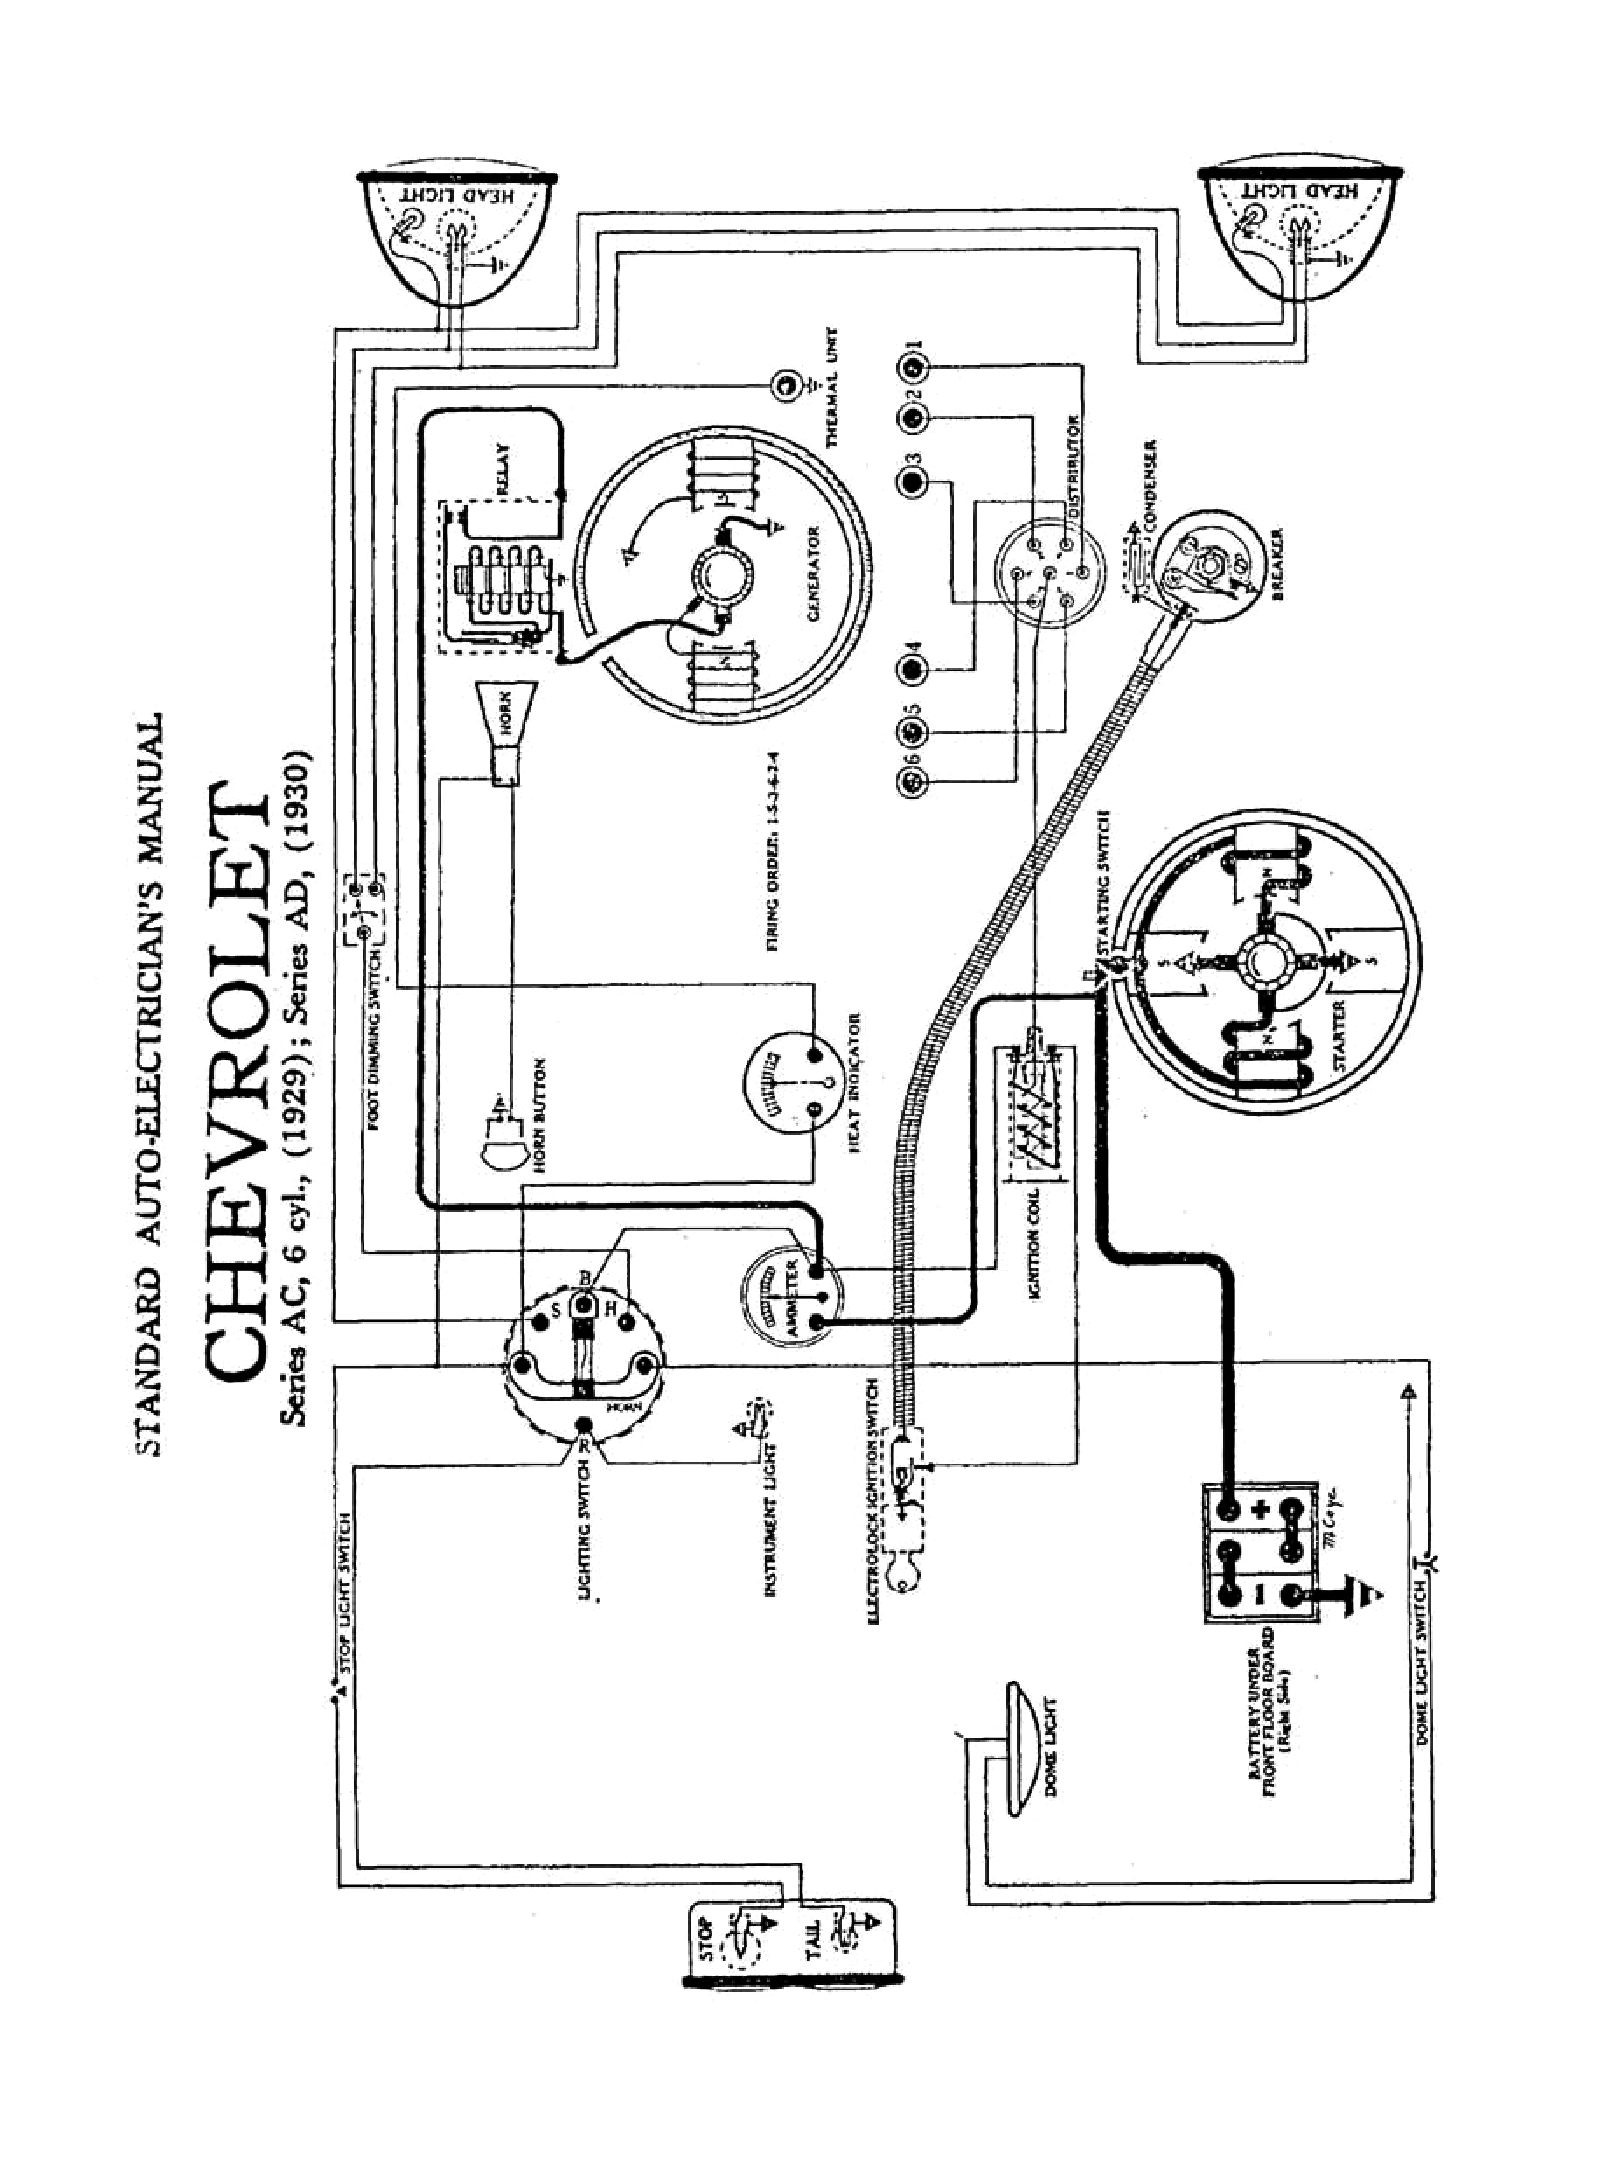 1940 chevy wiring diagram - wiring diagrams database  laccolade-lescours.fr